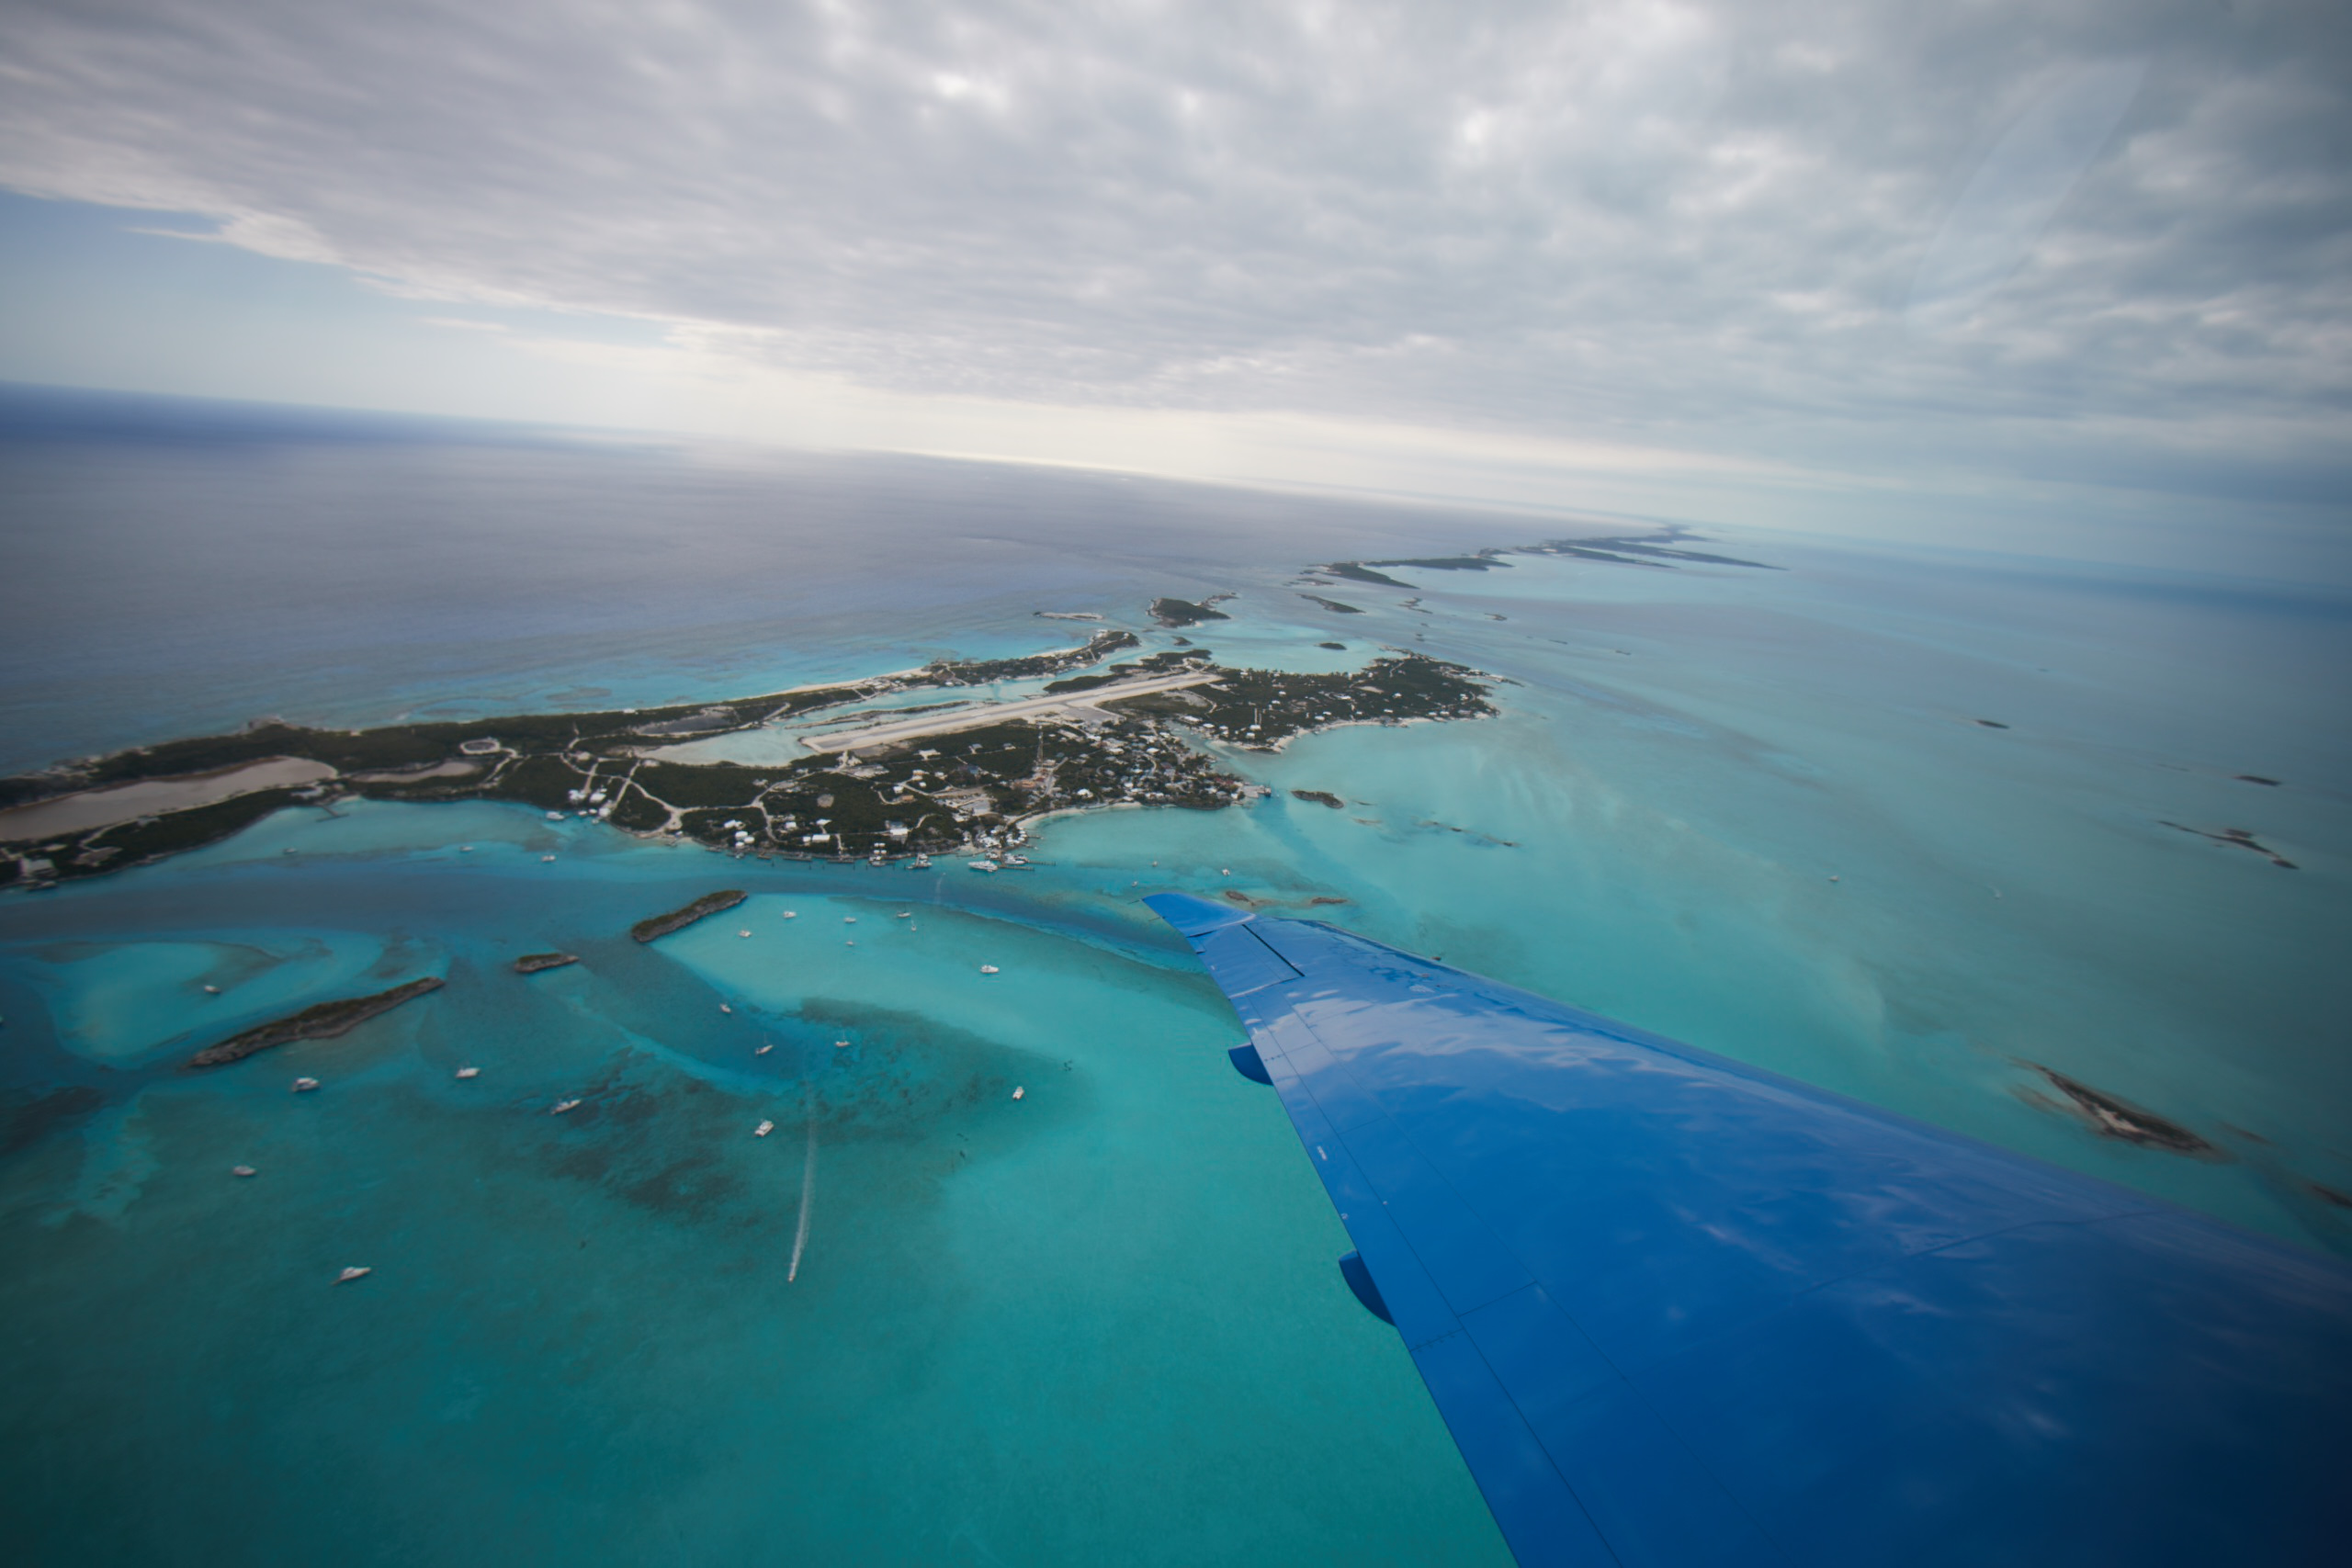 Wing View of Staniel Cay from a Pilatus PC-24 Private Jet